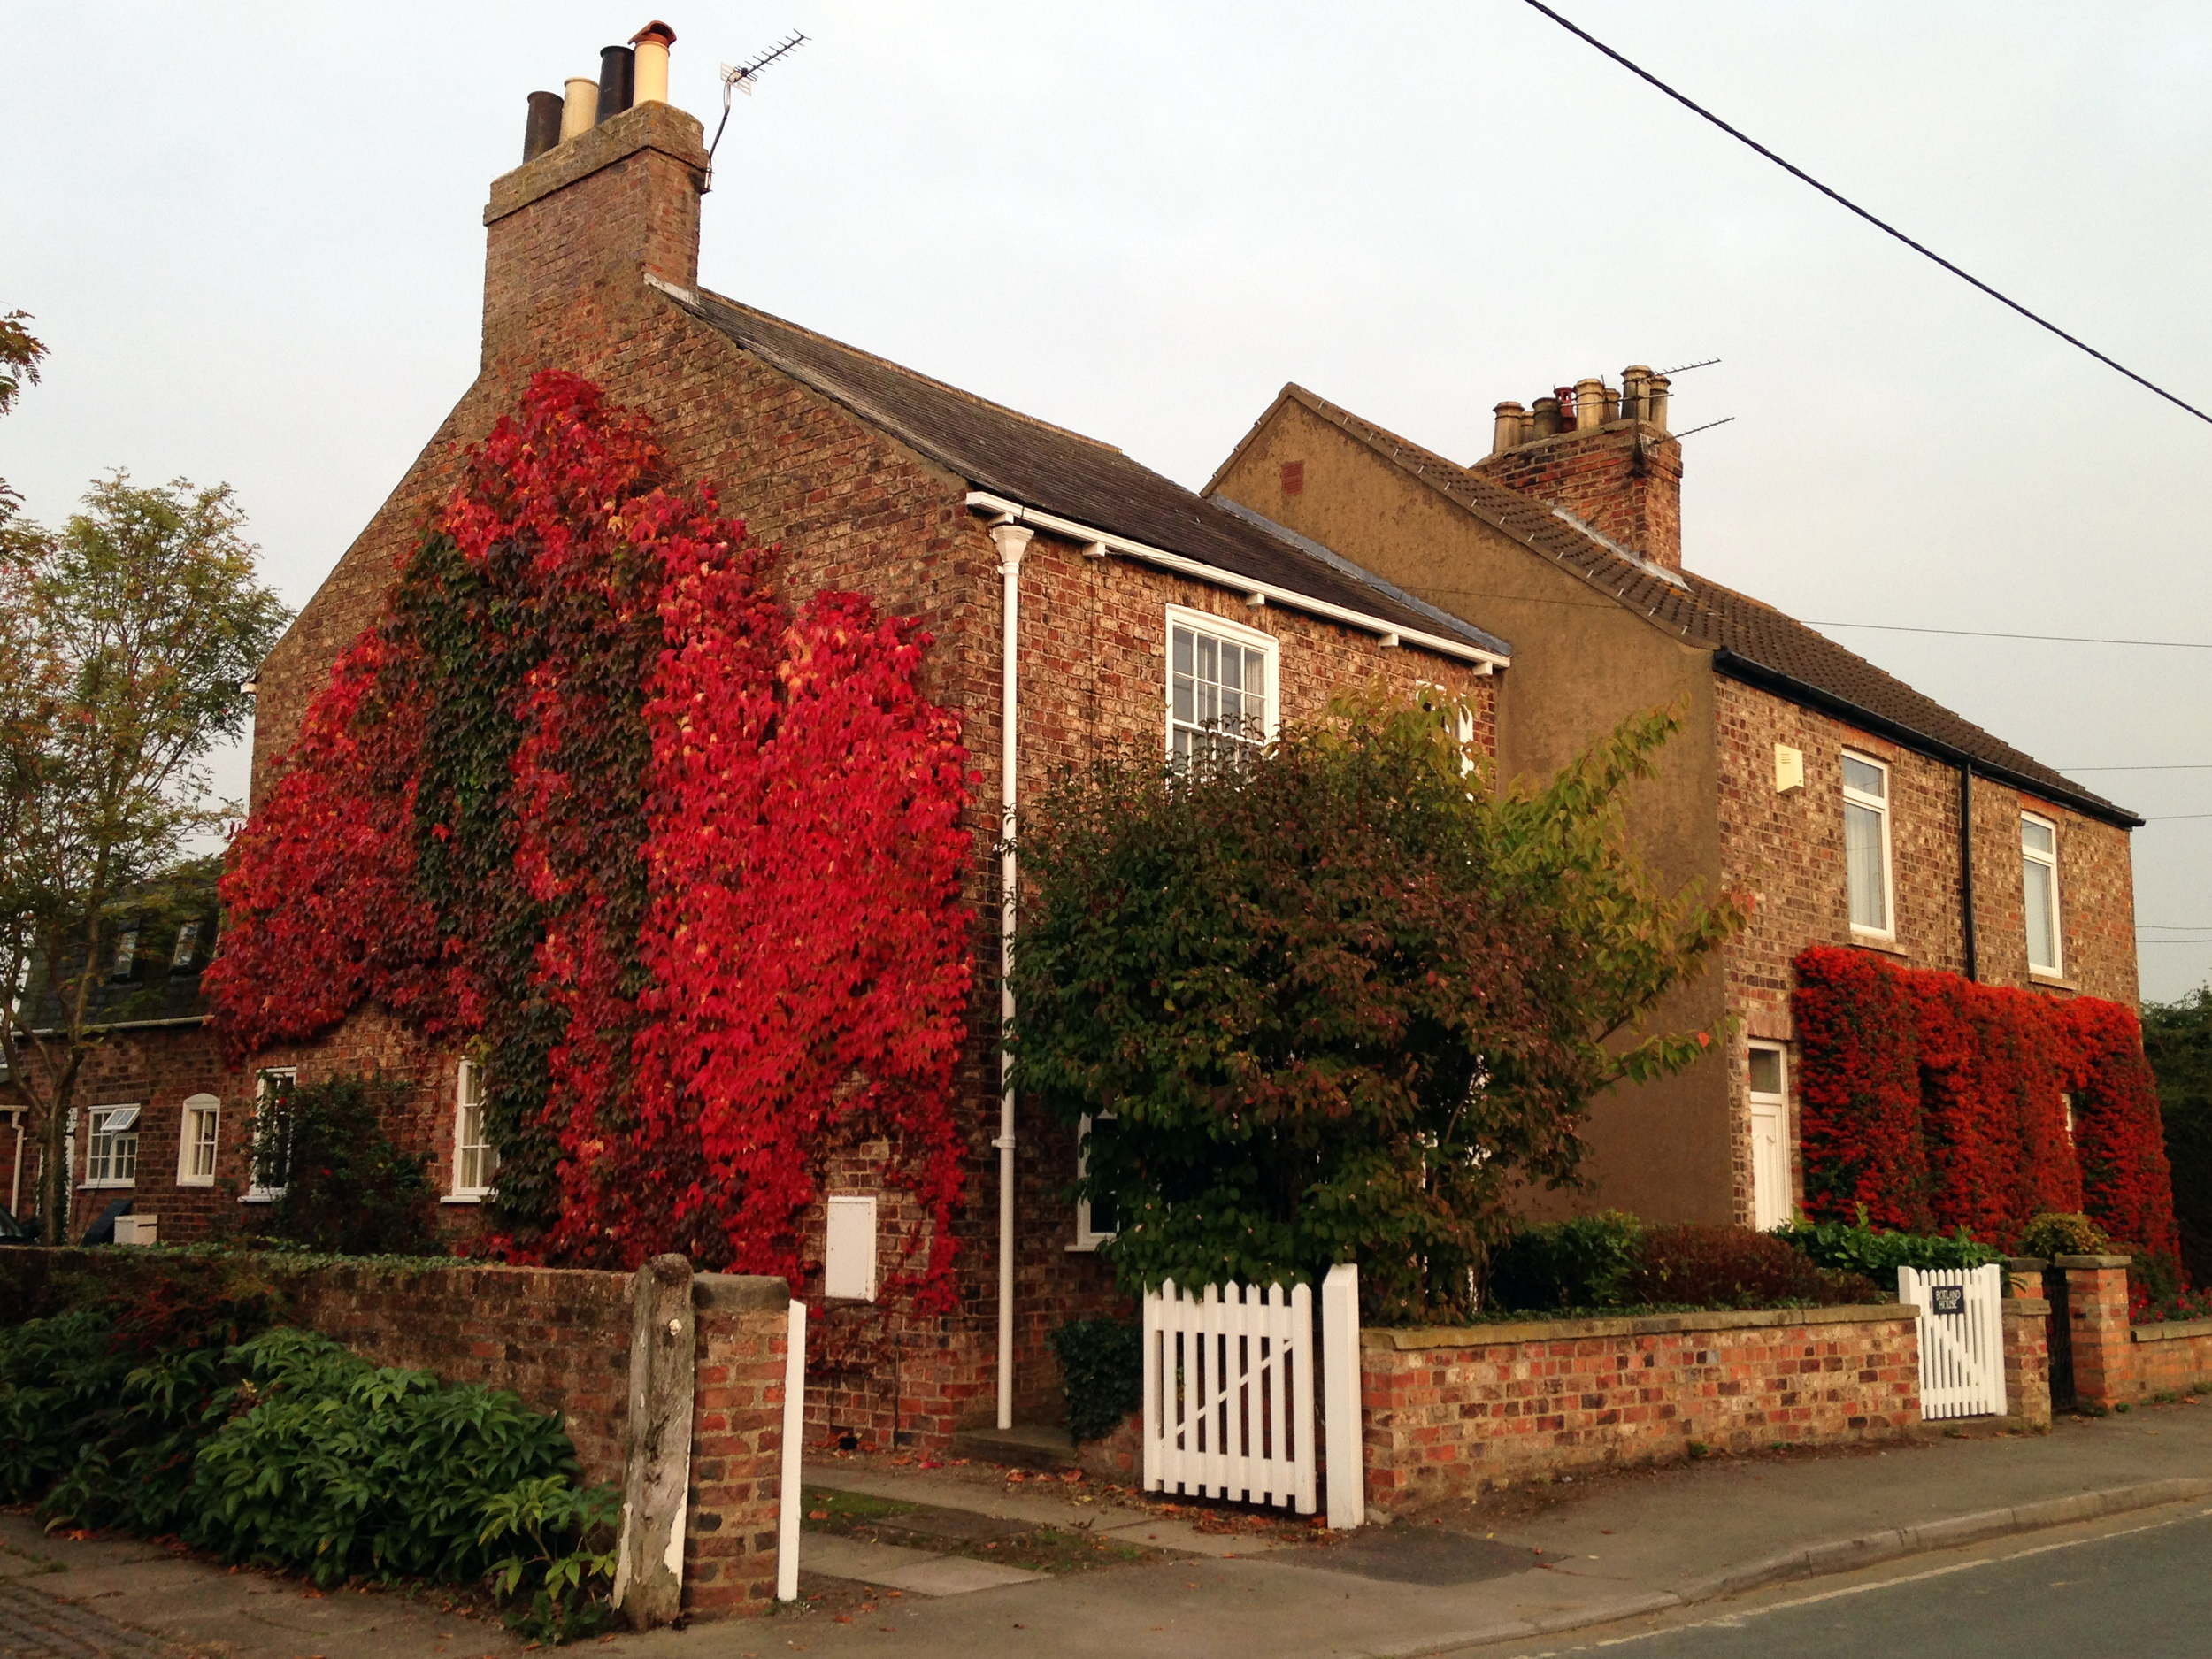 House With Red and Orange Ivy York England UK